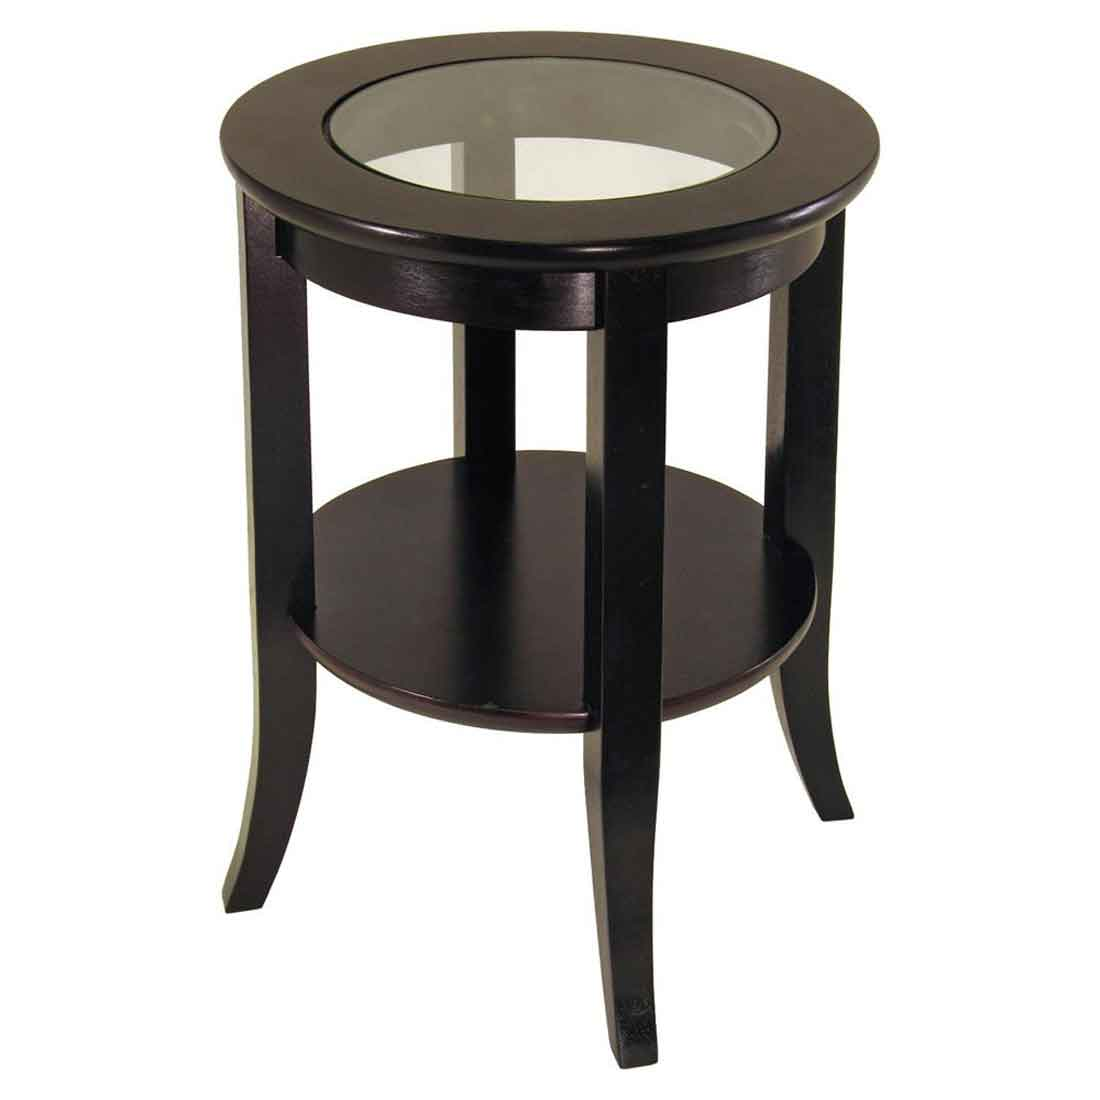 diy plans black for base furnishing small covers home room accent table and white tables glass woodworking pedestal designs furn tablecloth metal distressed end target round